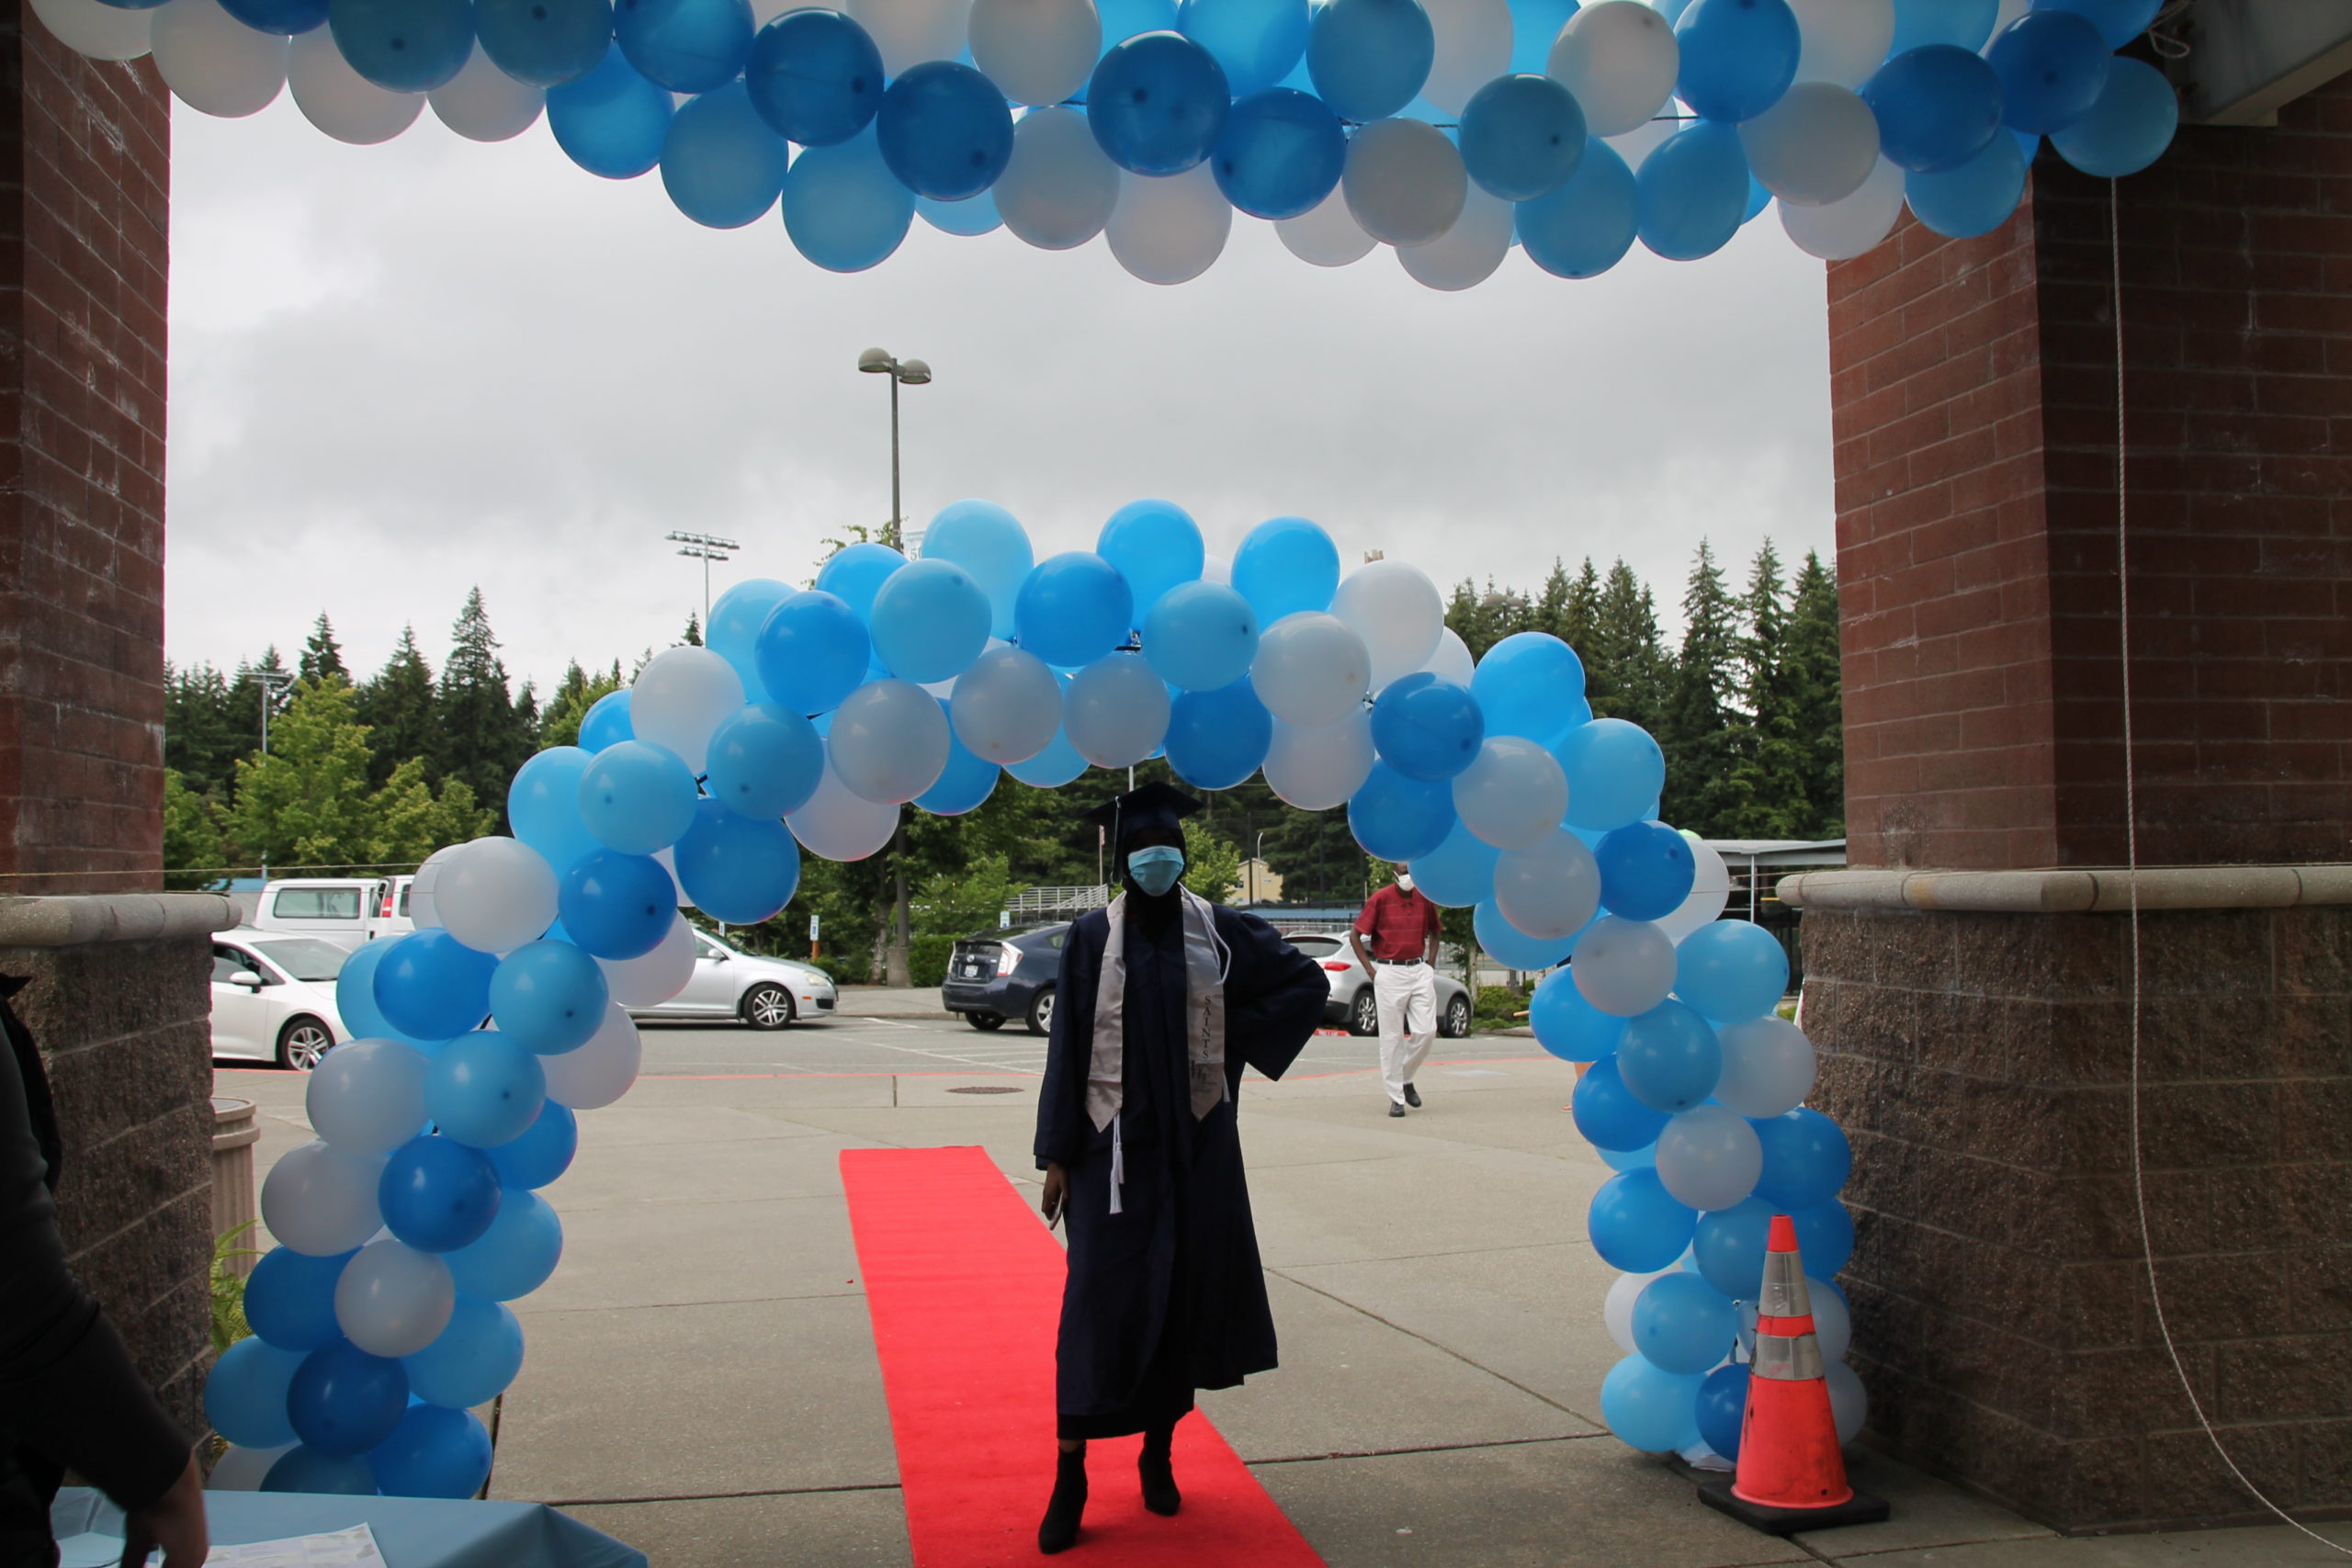 Interlake High School 2020 graduation